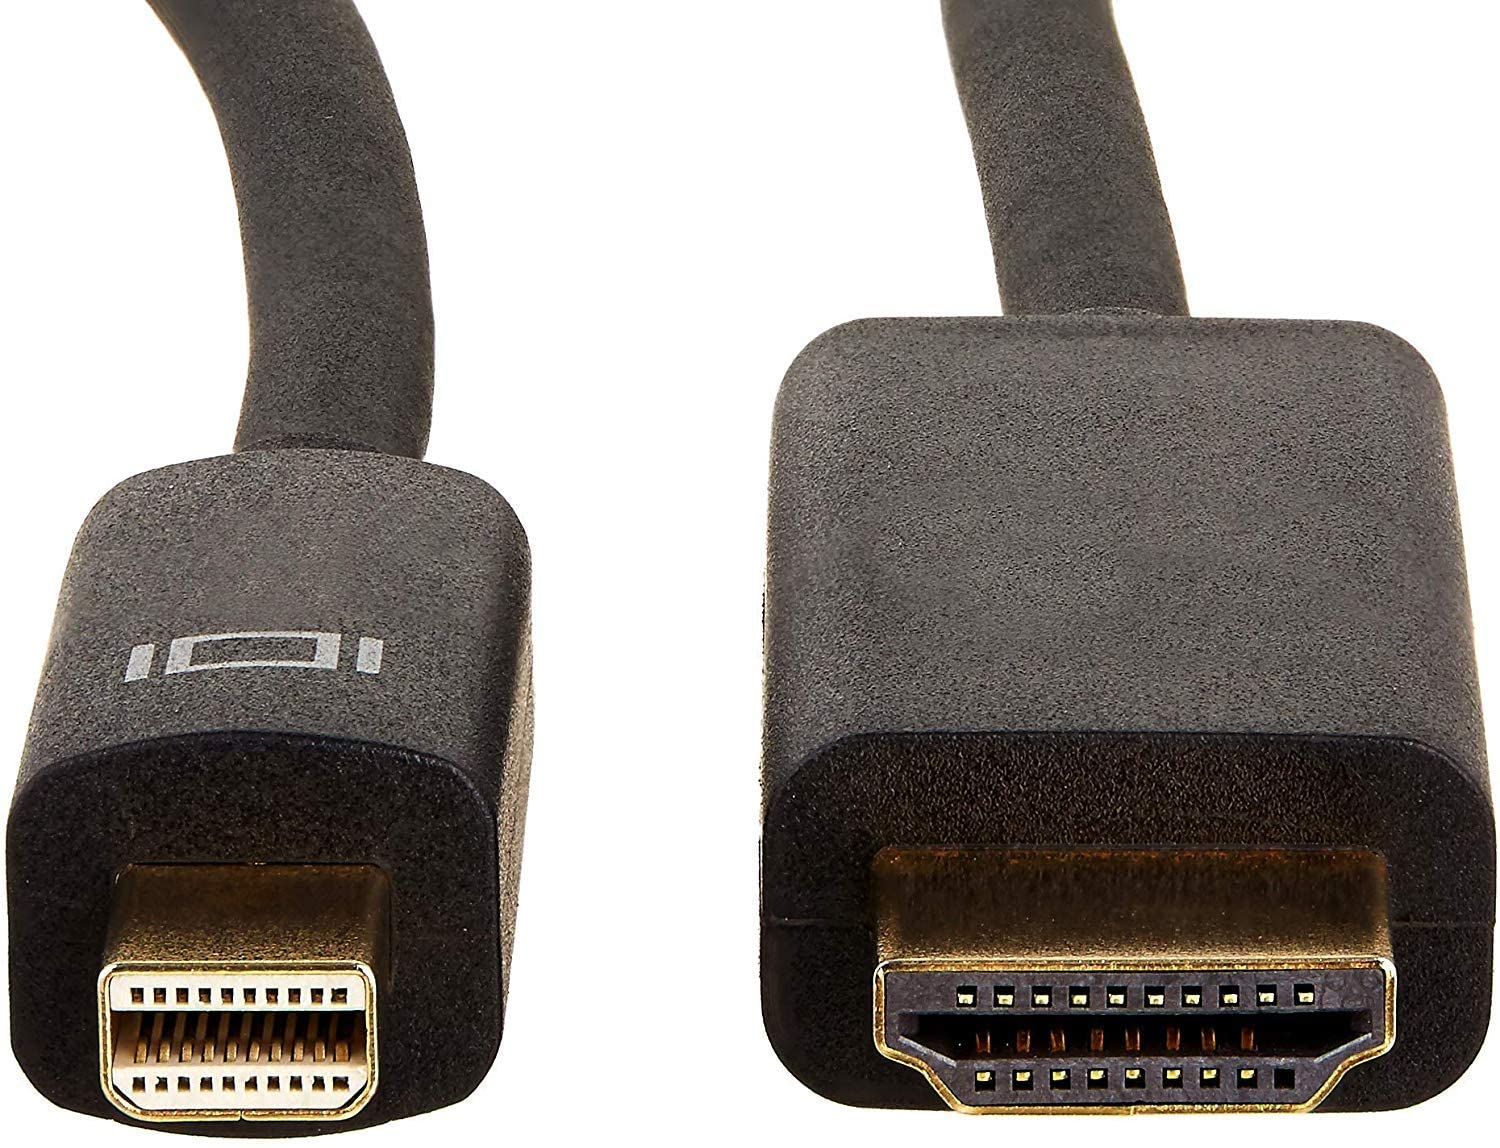 AmazonBasics Mini DisplayPort to HDMI Display Adapter